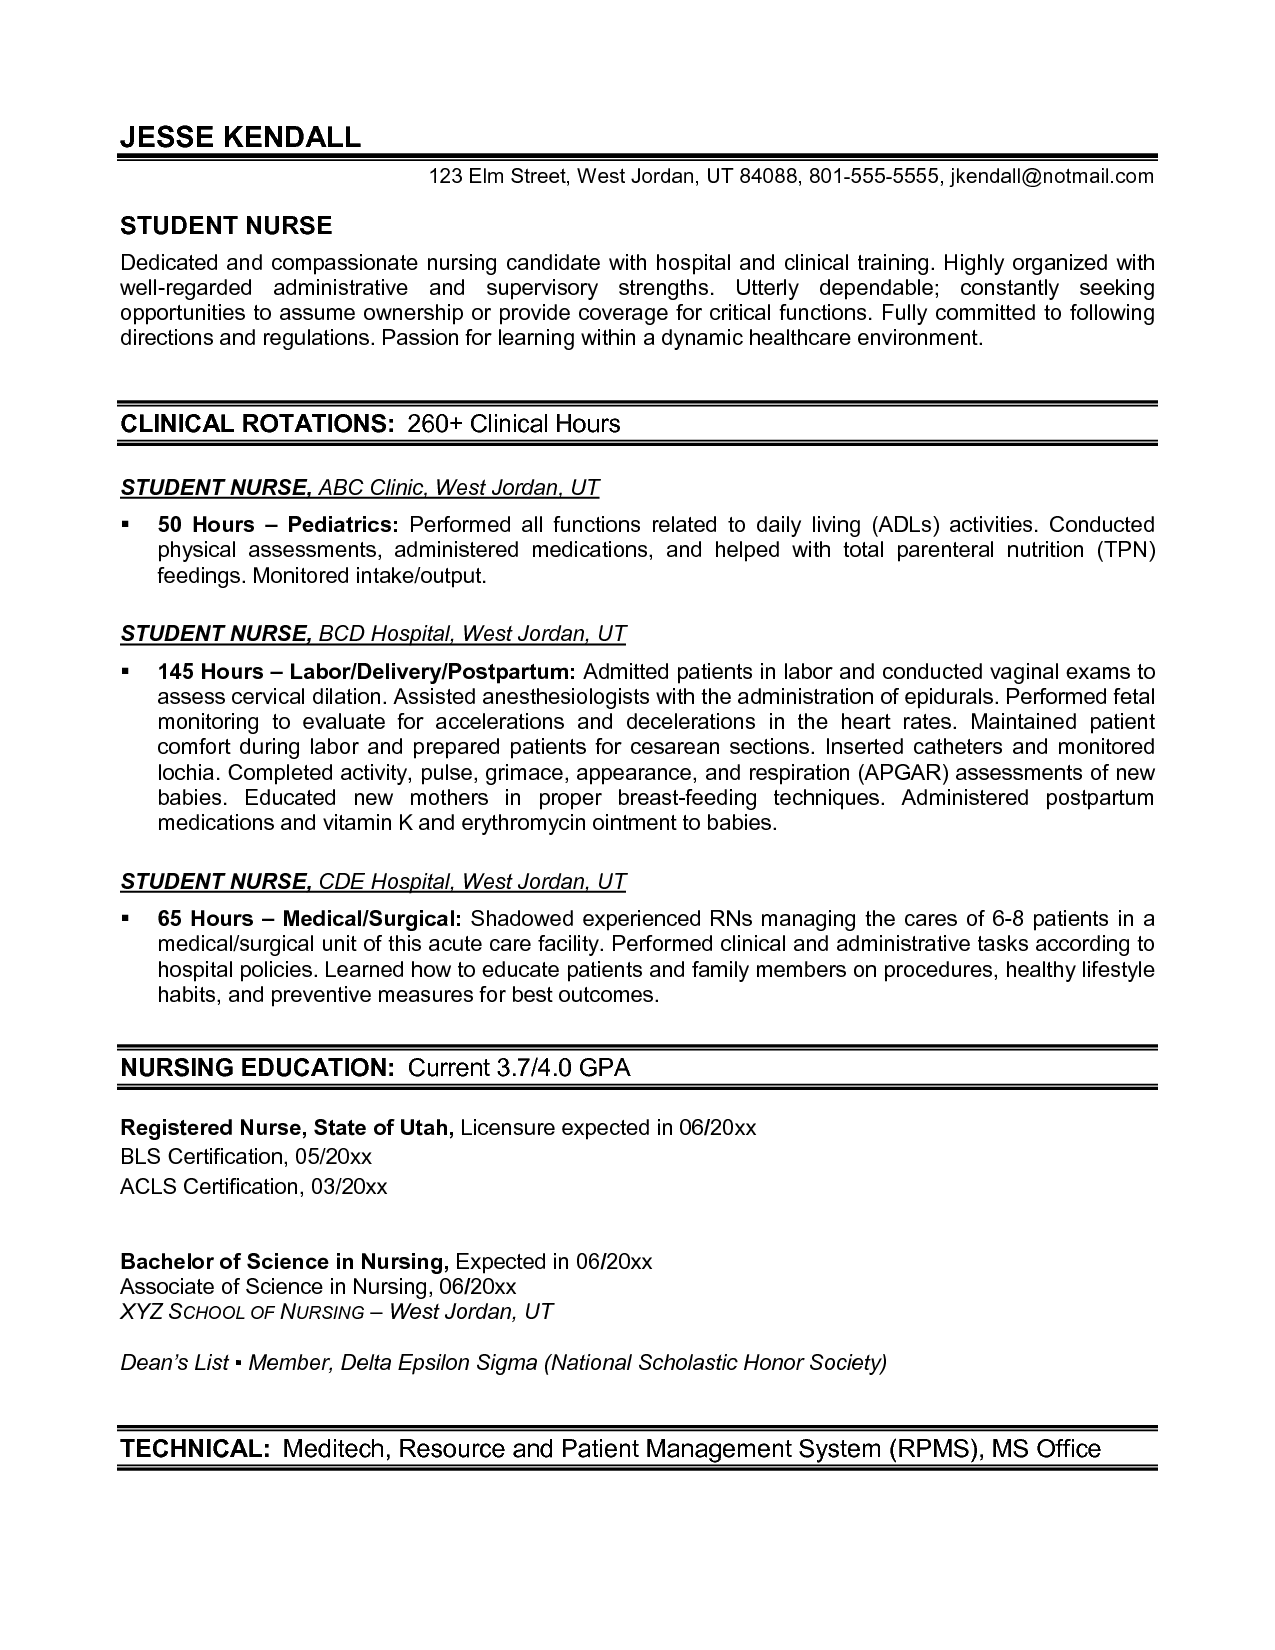 Examples Of Nursing Resumes Resume Template Nursing  Nursing  Pinterest  Nursing Resume